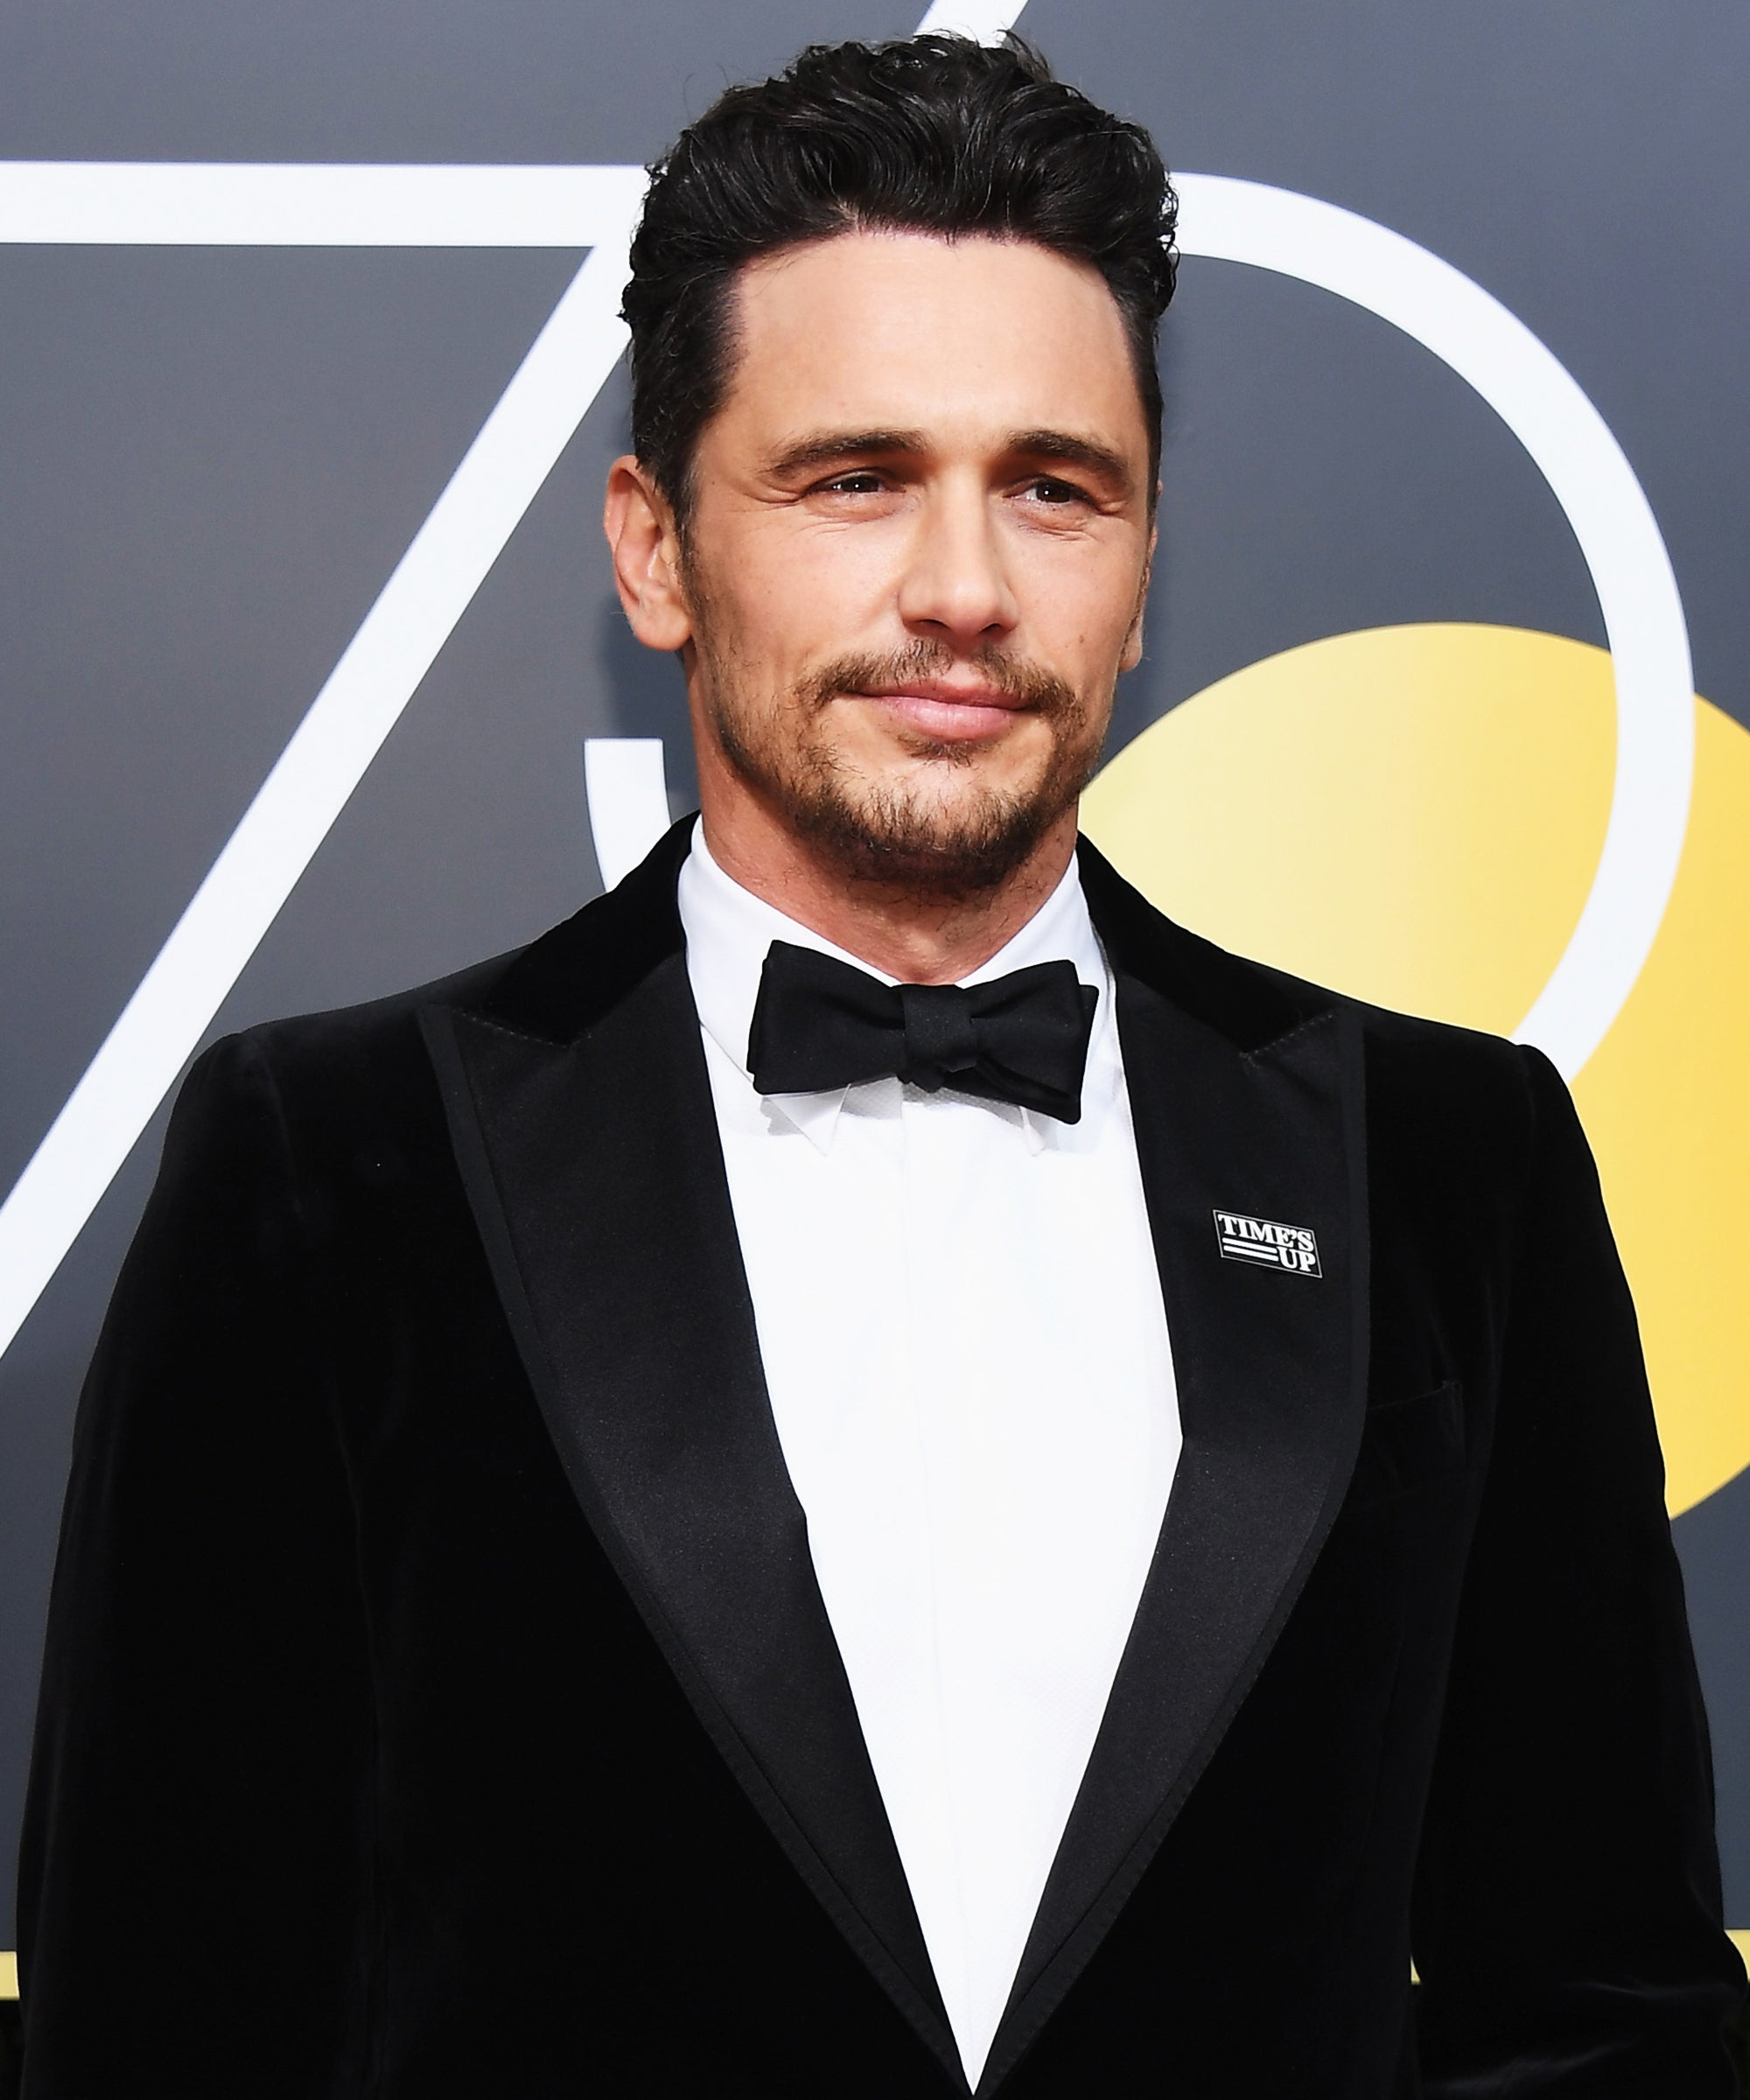 Students At James Franco's Acting School File Lawsuit Detailing Inappropriate Behavior